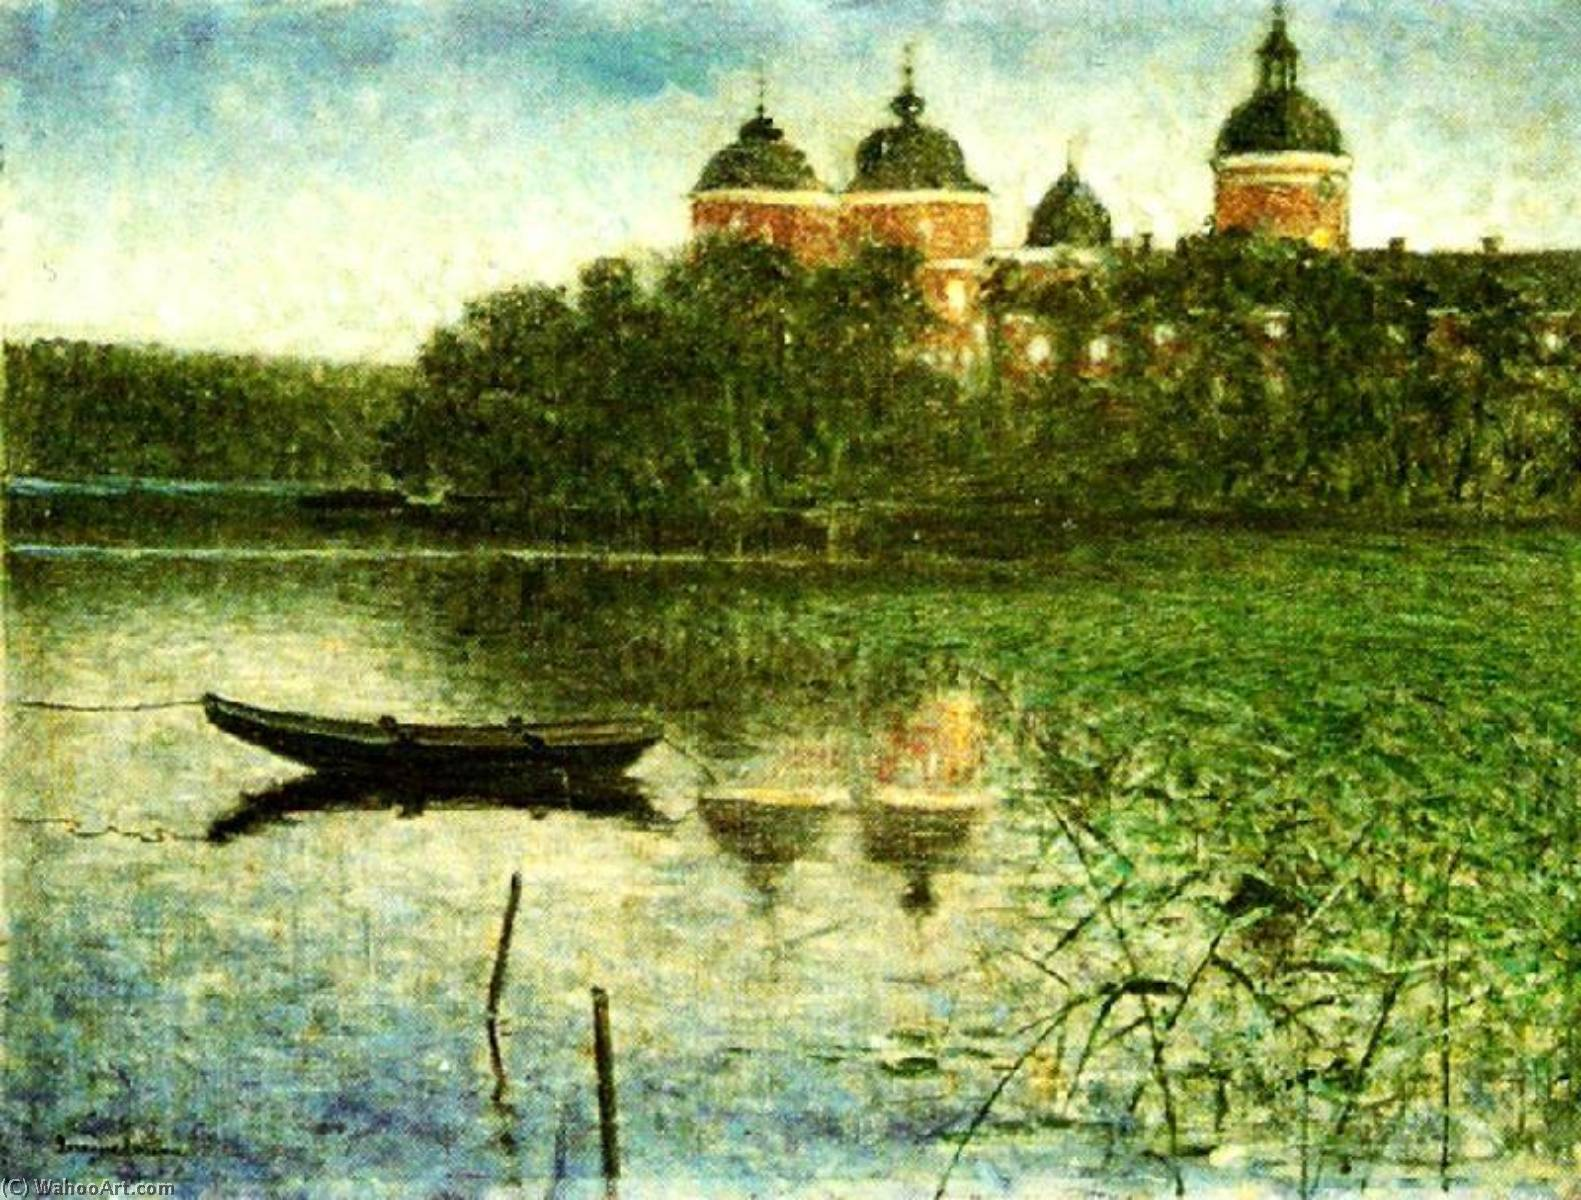 Order Painting Copy : Gripsholm castle, 1881 by Eugene Jansson (1862-1915) | WahooArt.com